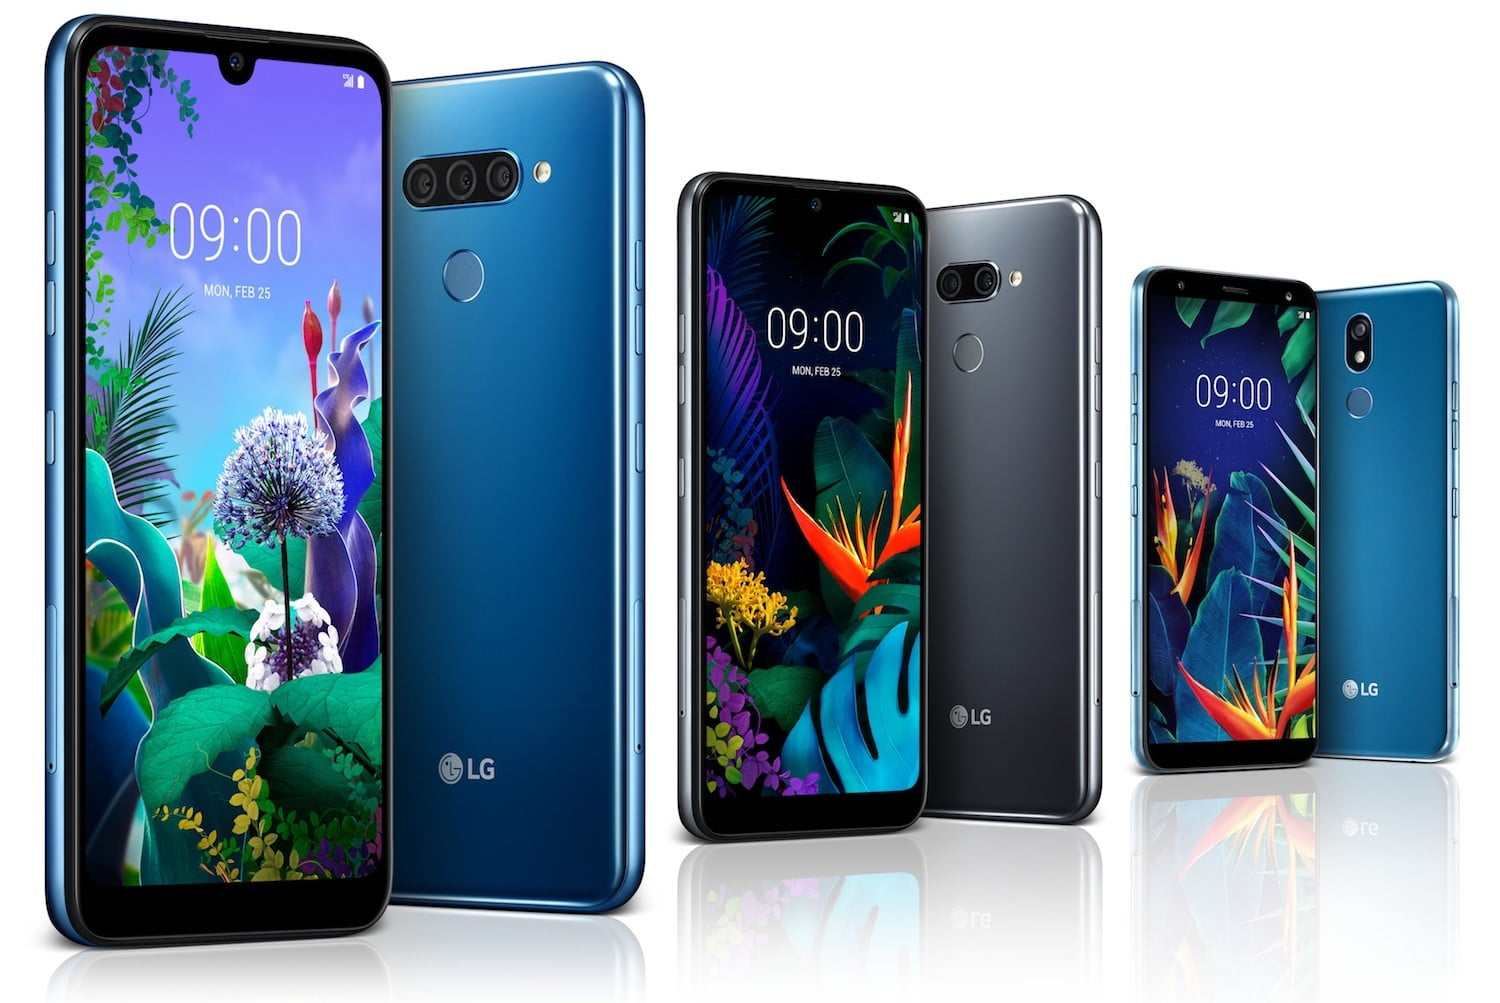 LG Starts MWC 2019 Early With New Q60, K50, and K40 Phones ...